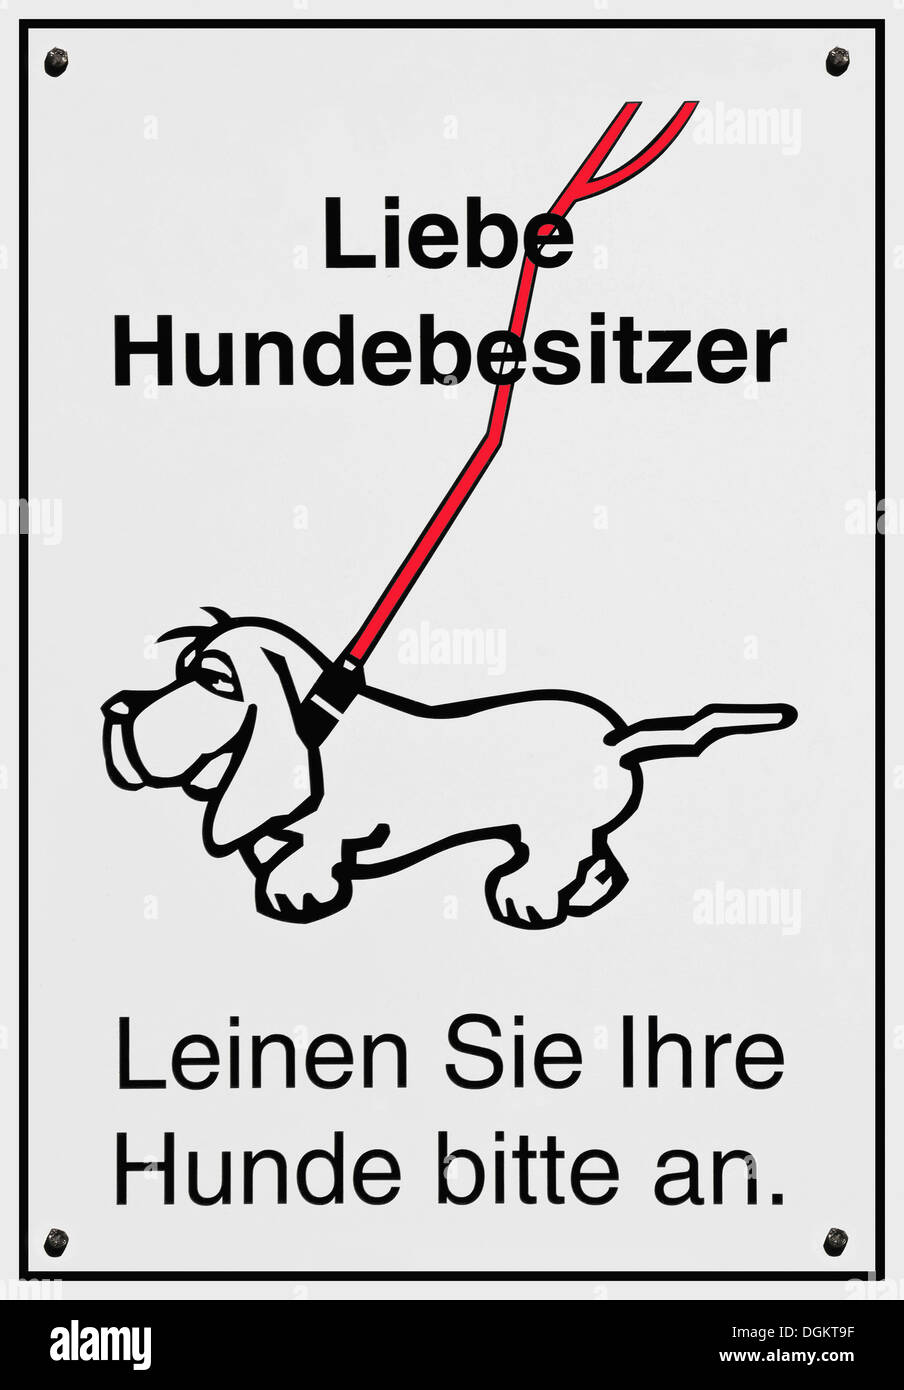 Sign, Liebe Hundebesitzer Leinen Sie Ihre Hunde bitte an or dear dog owners, please keep your dog on a leash - Stock Image